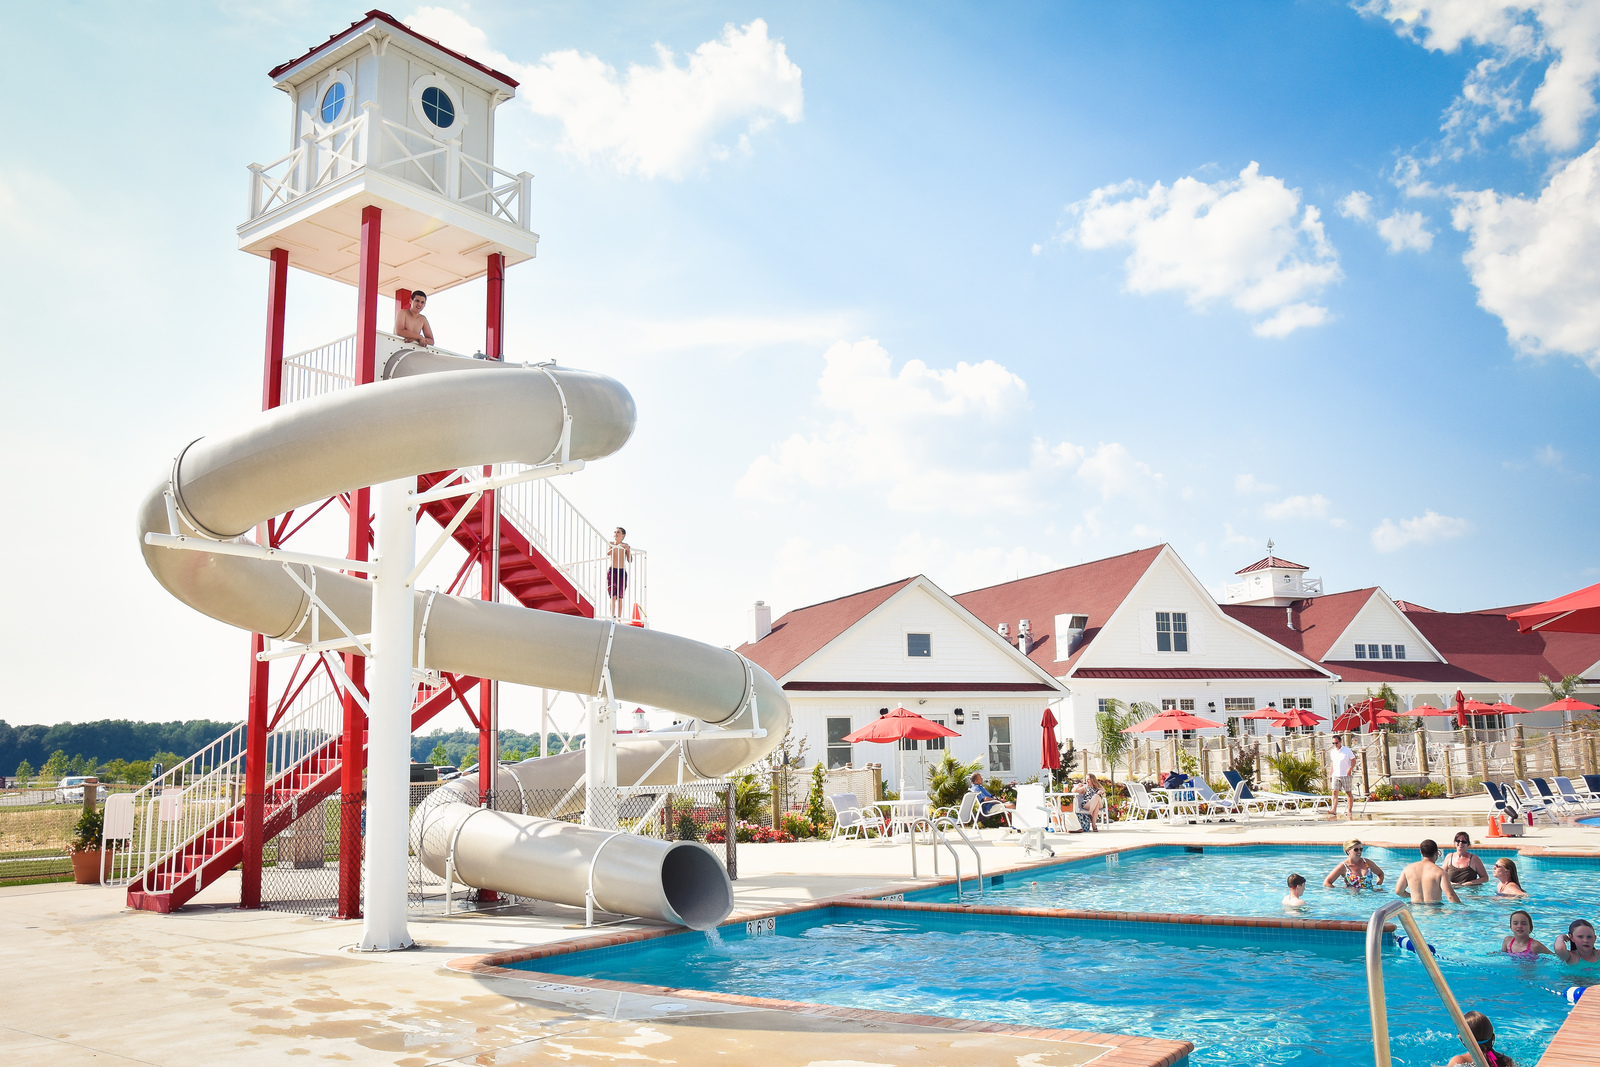 The community pool features fun amenities, like this water slide!